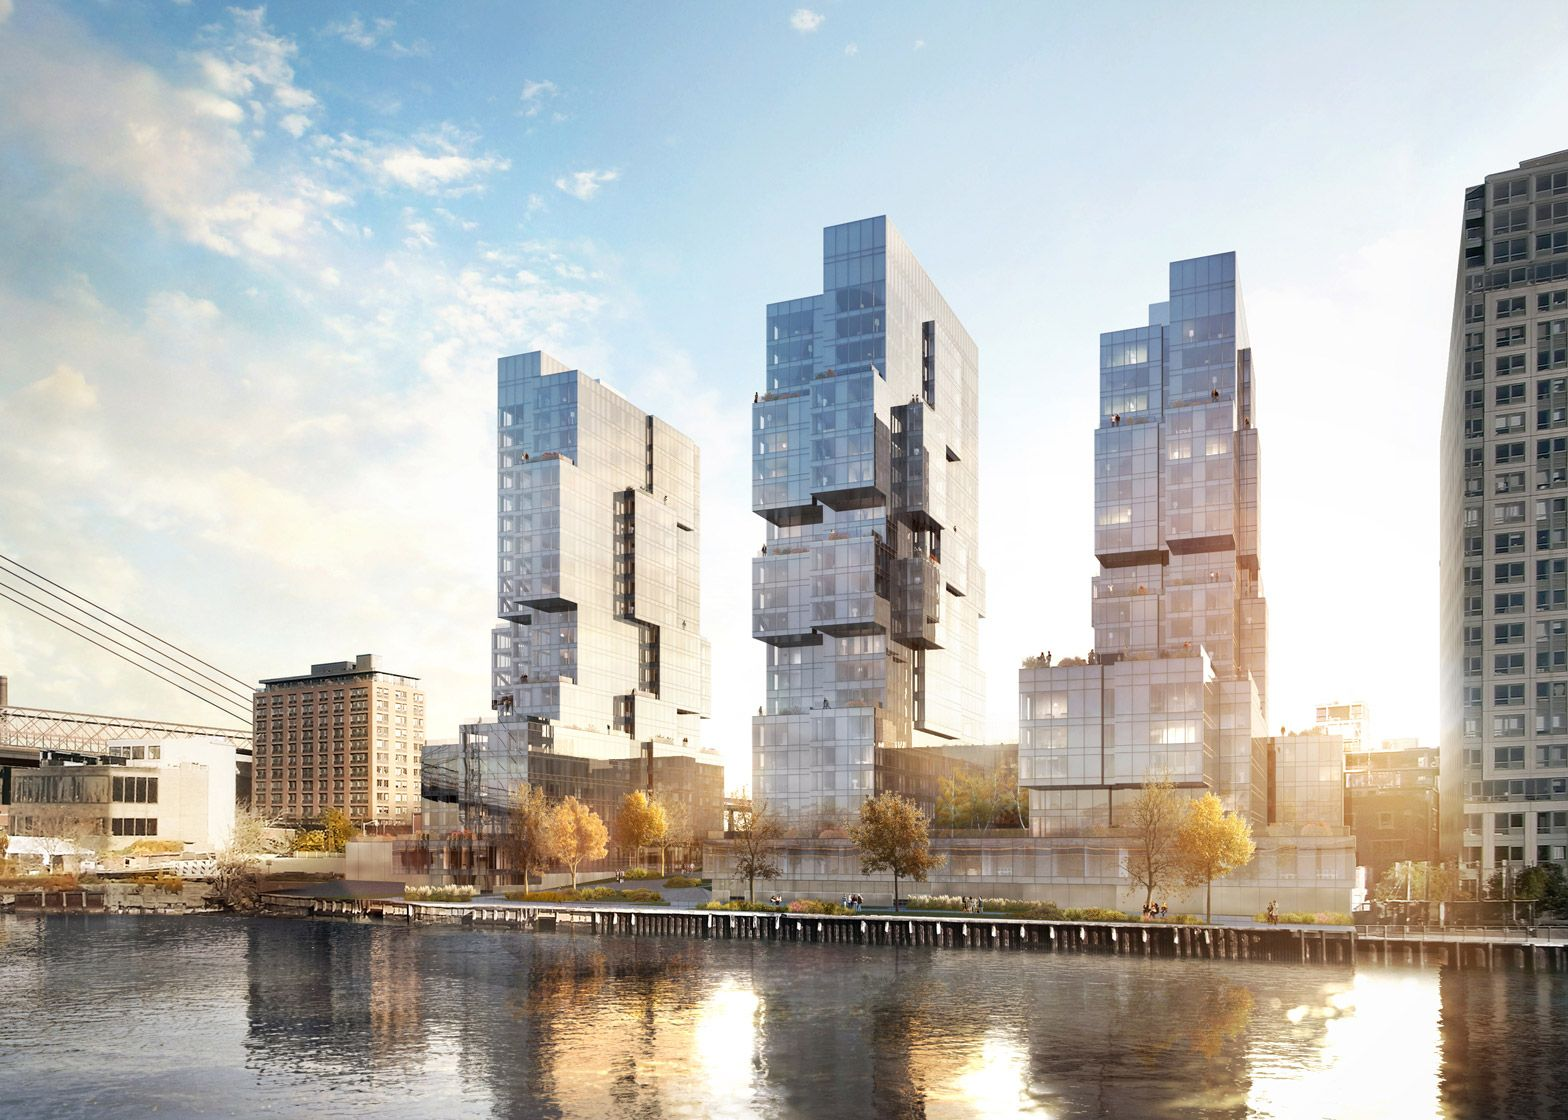 ODA has conceived three glass towers for Brooklyn's waterfront that feature setbacks and protrusions to ensure tenants are afforded expansive views